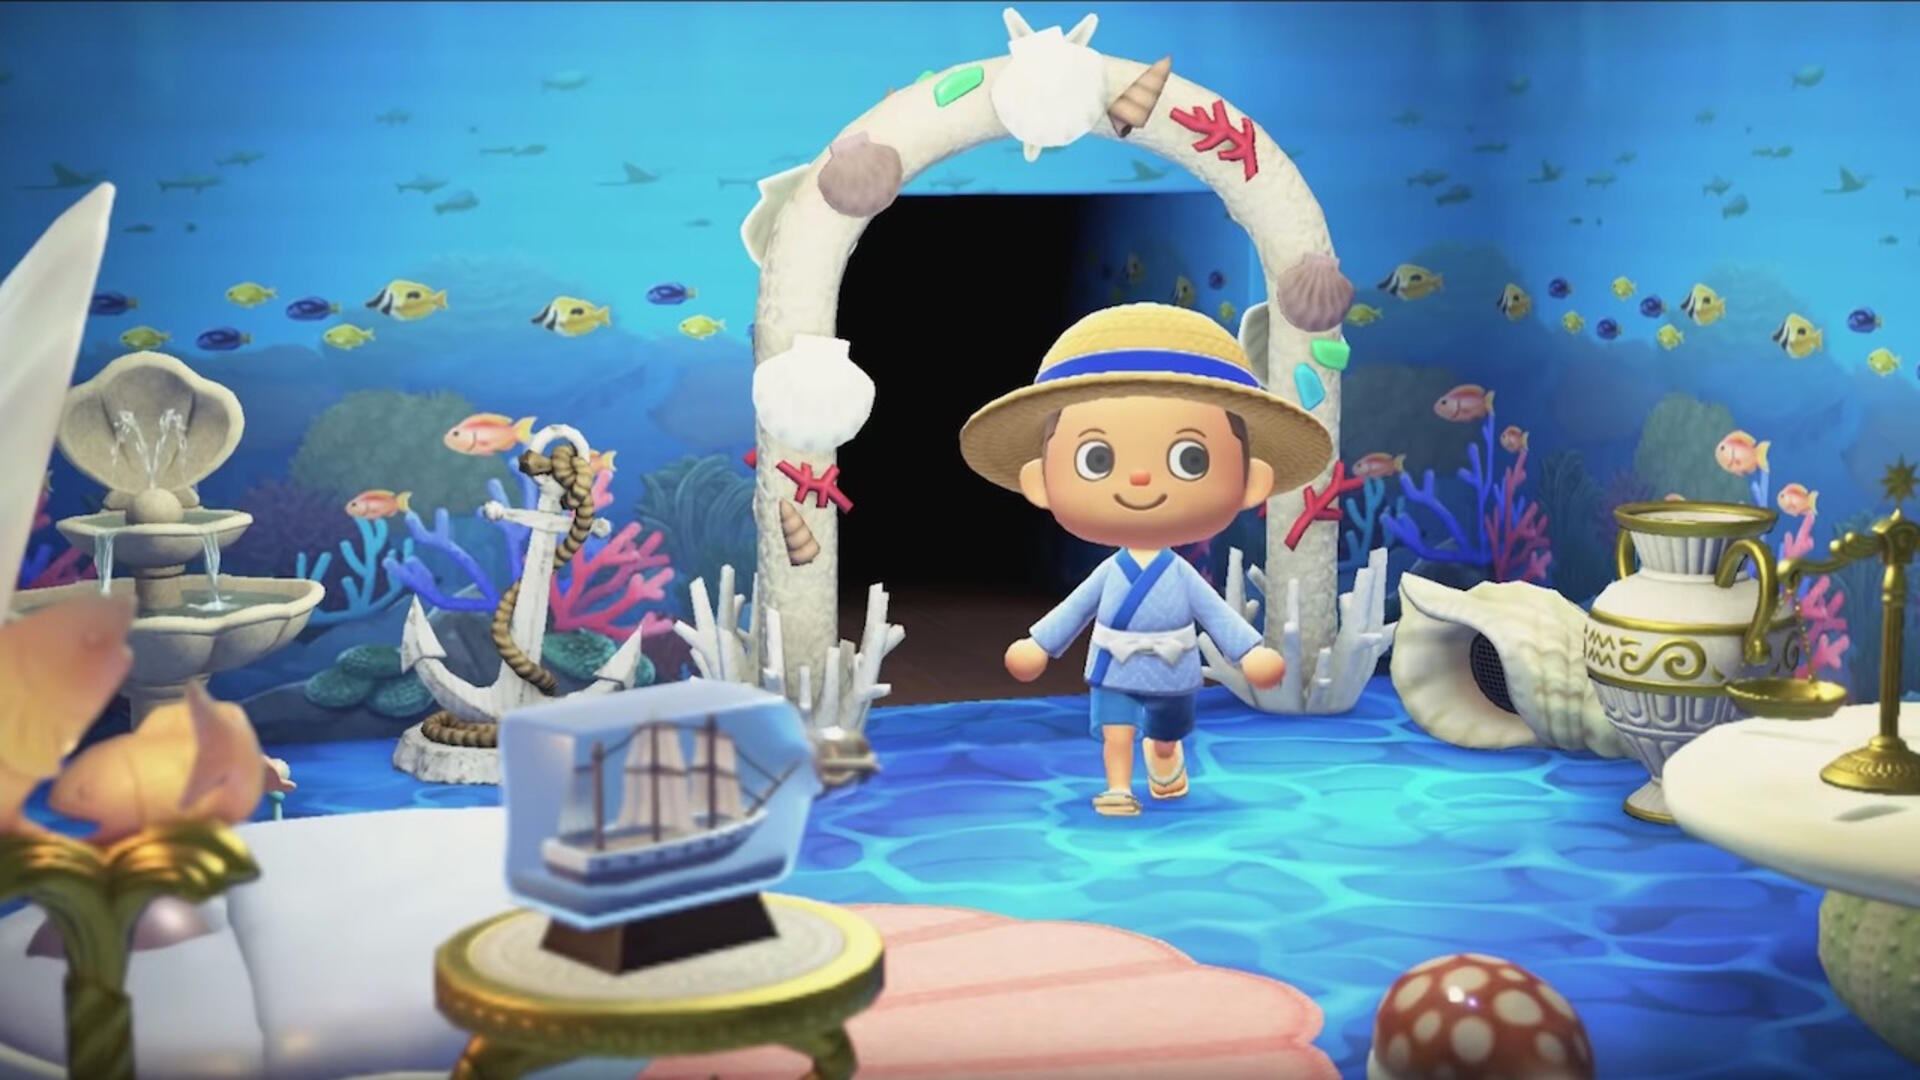 Animal Crossing New Horizons Appears To Let You Decorate Your House With Animated Wallpaper Usgamer